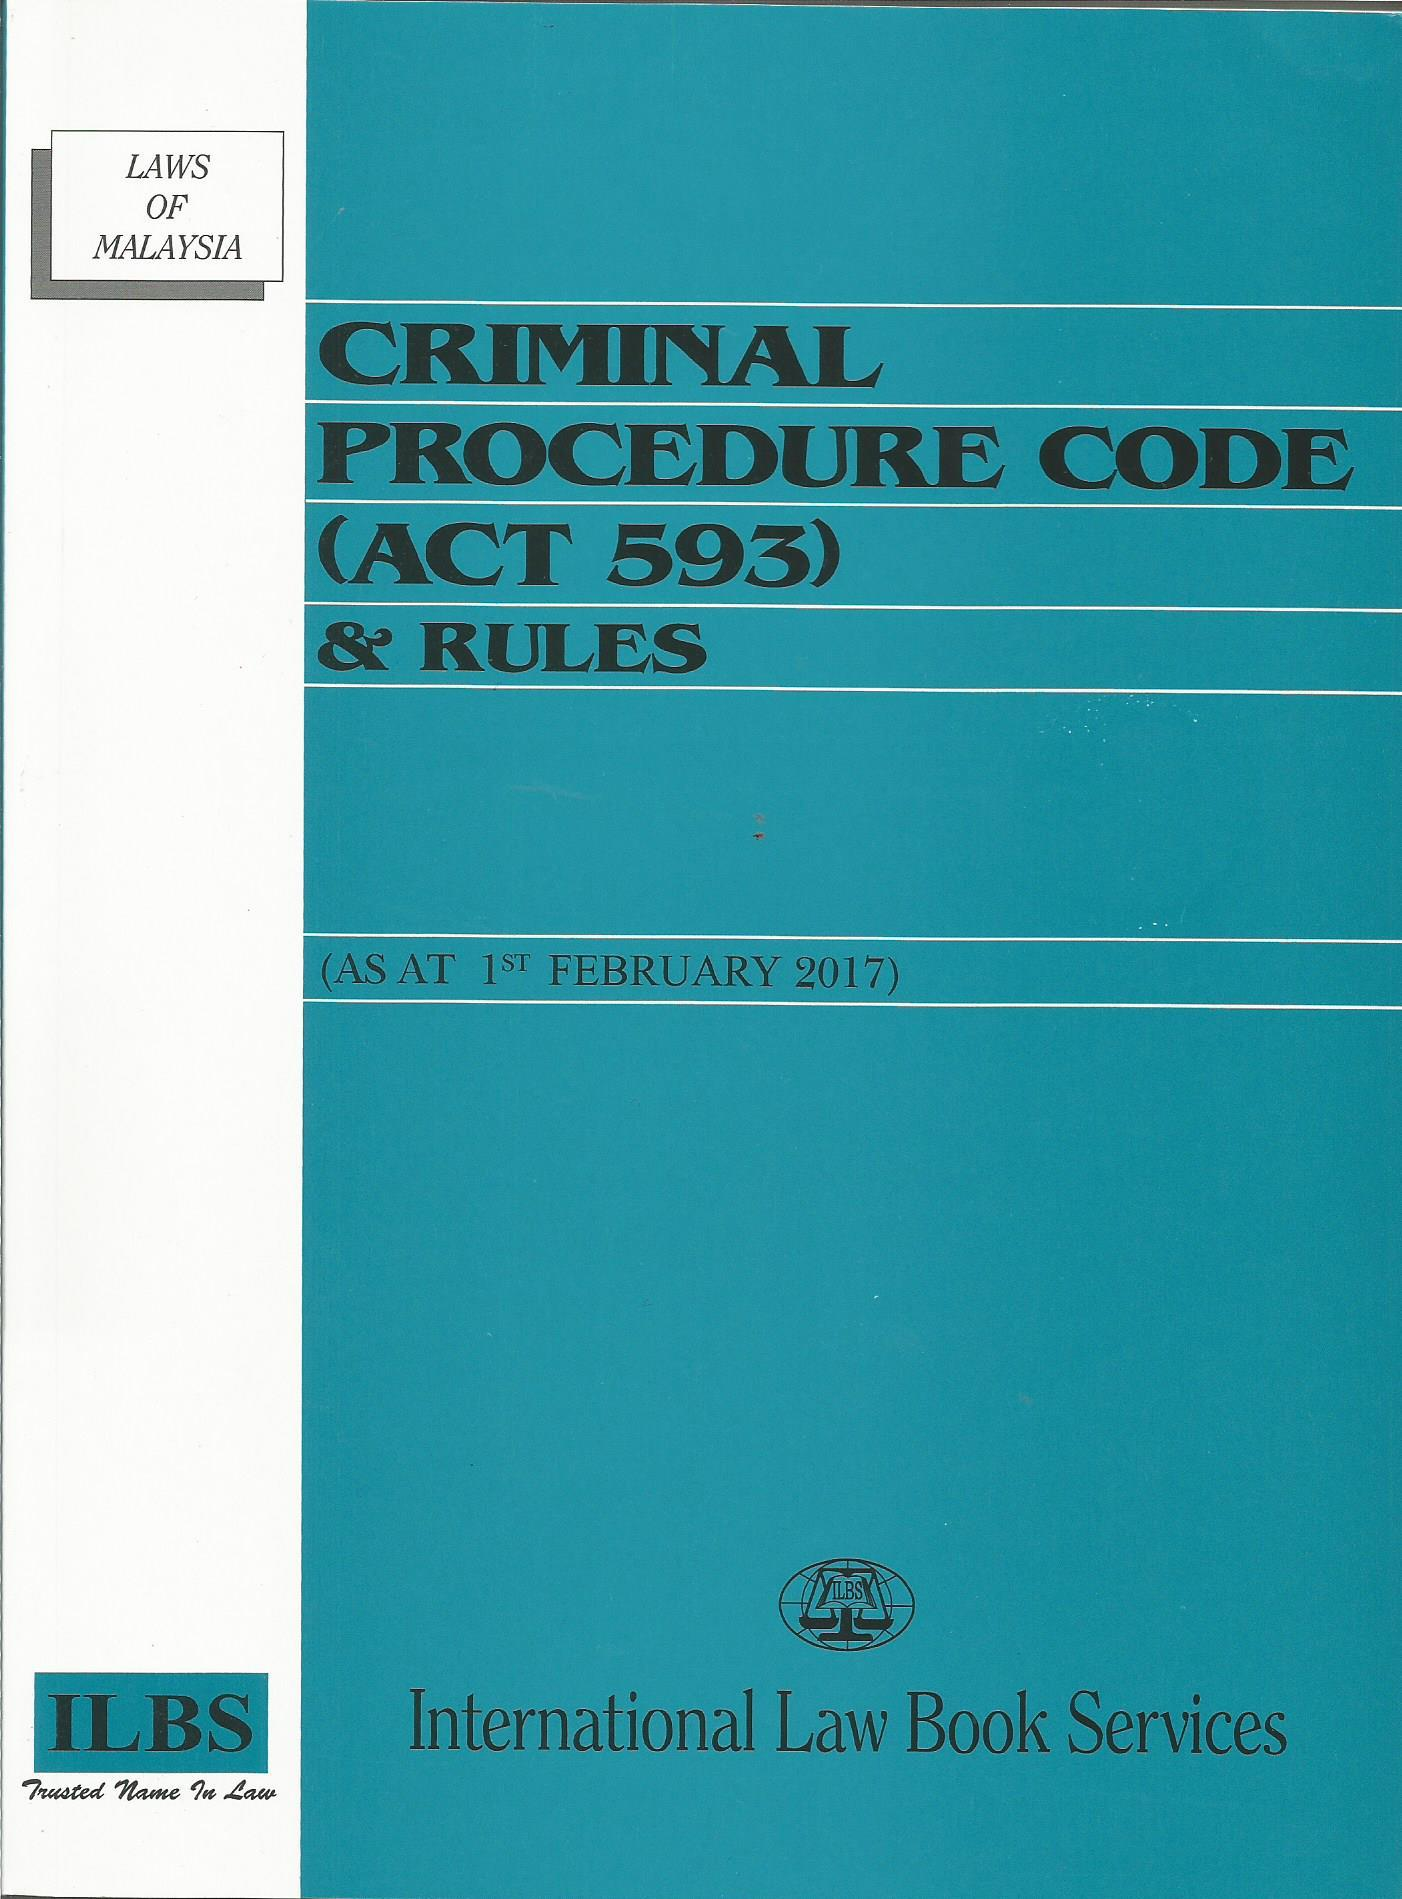 criminal procedure code rm25 0.550001.jpg